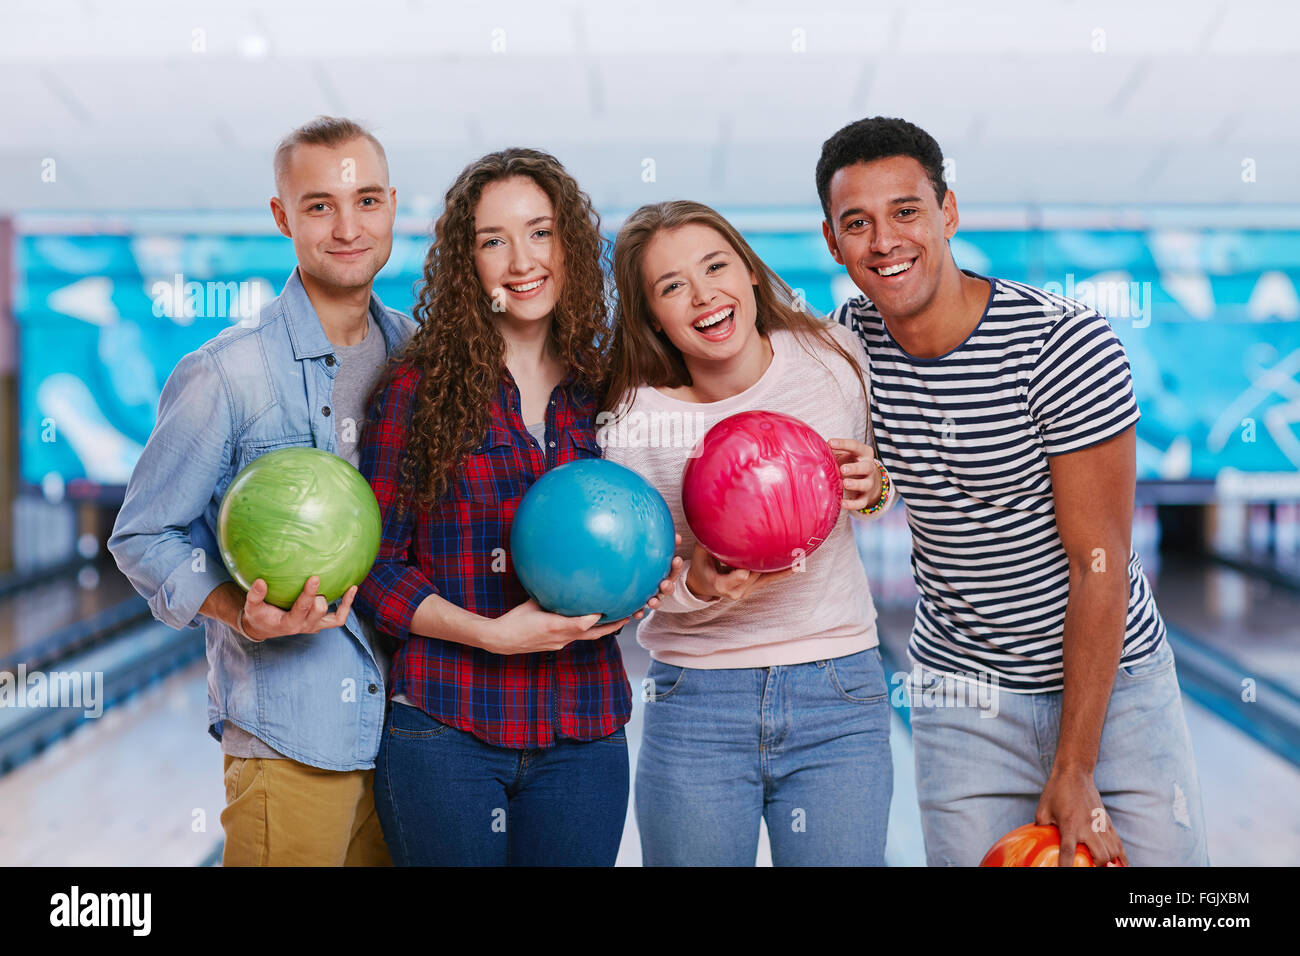 Friendly guys and girls holding bowling balls - Stock Image